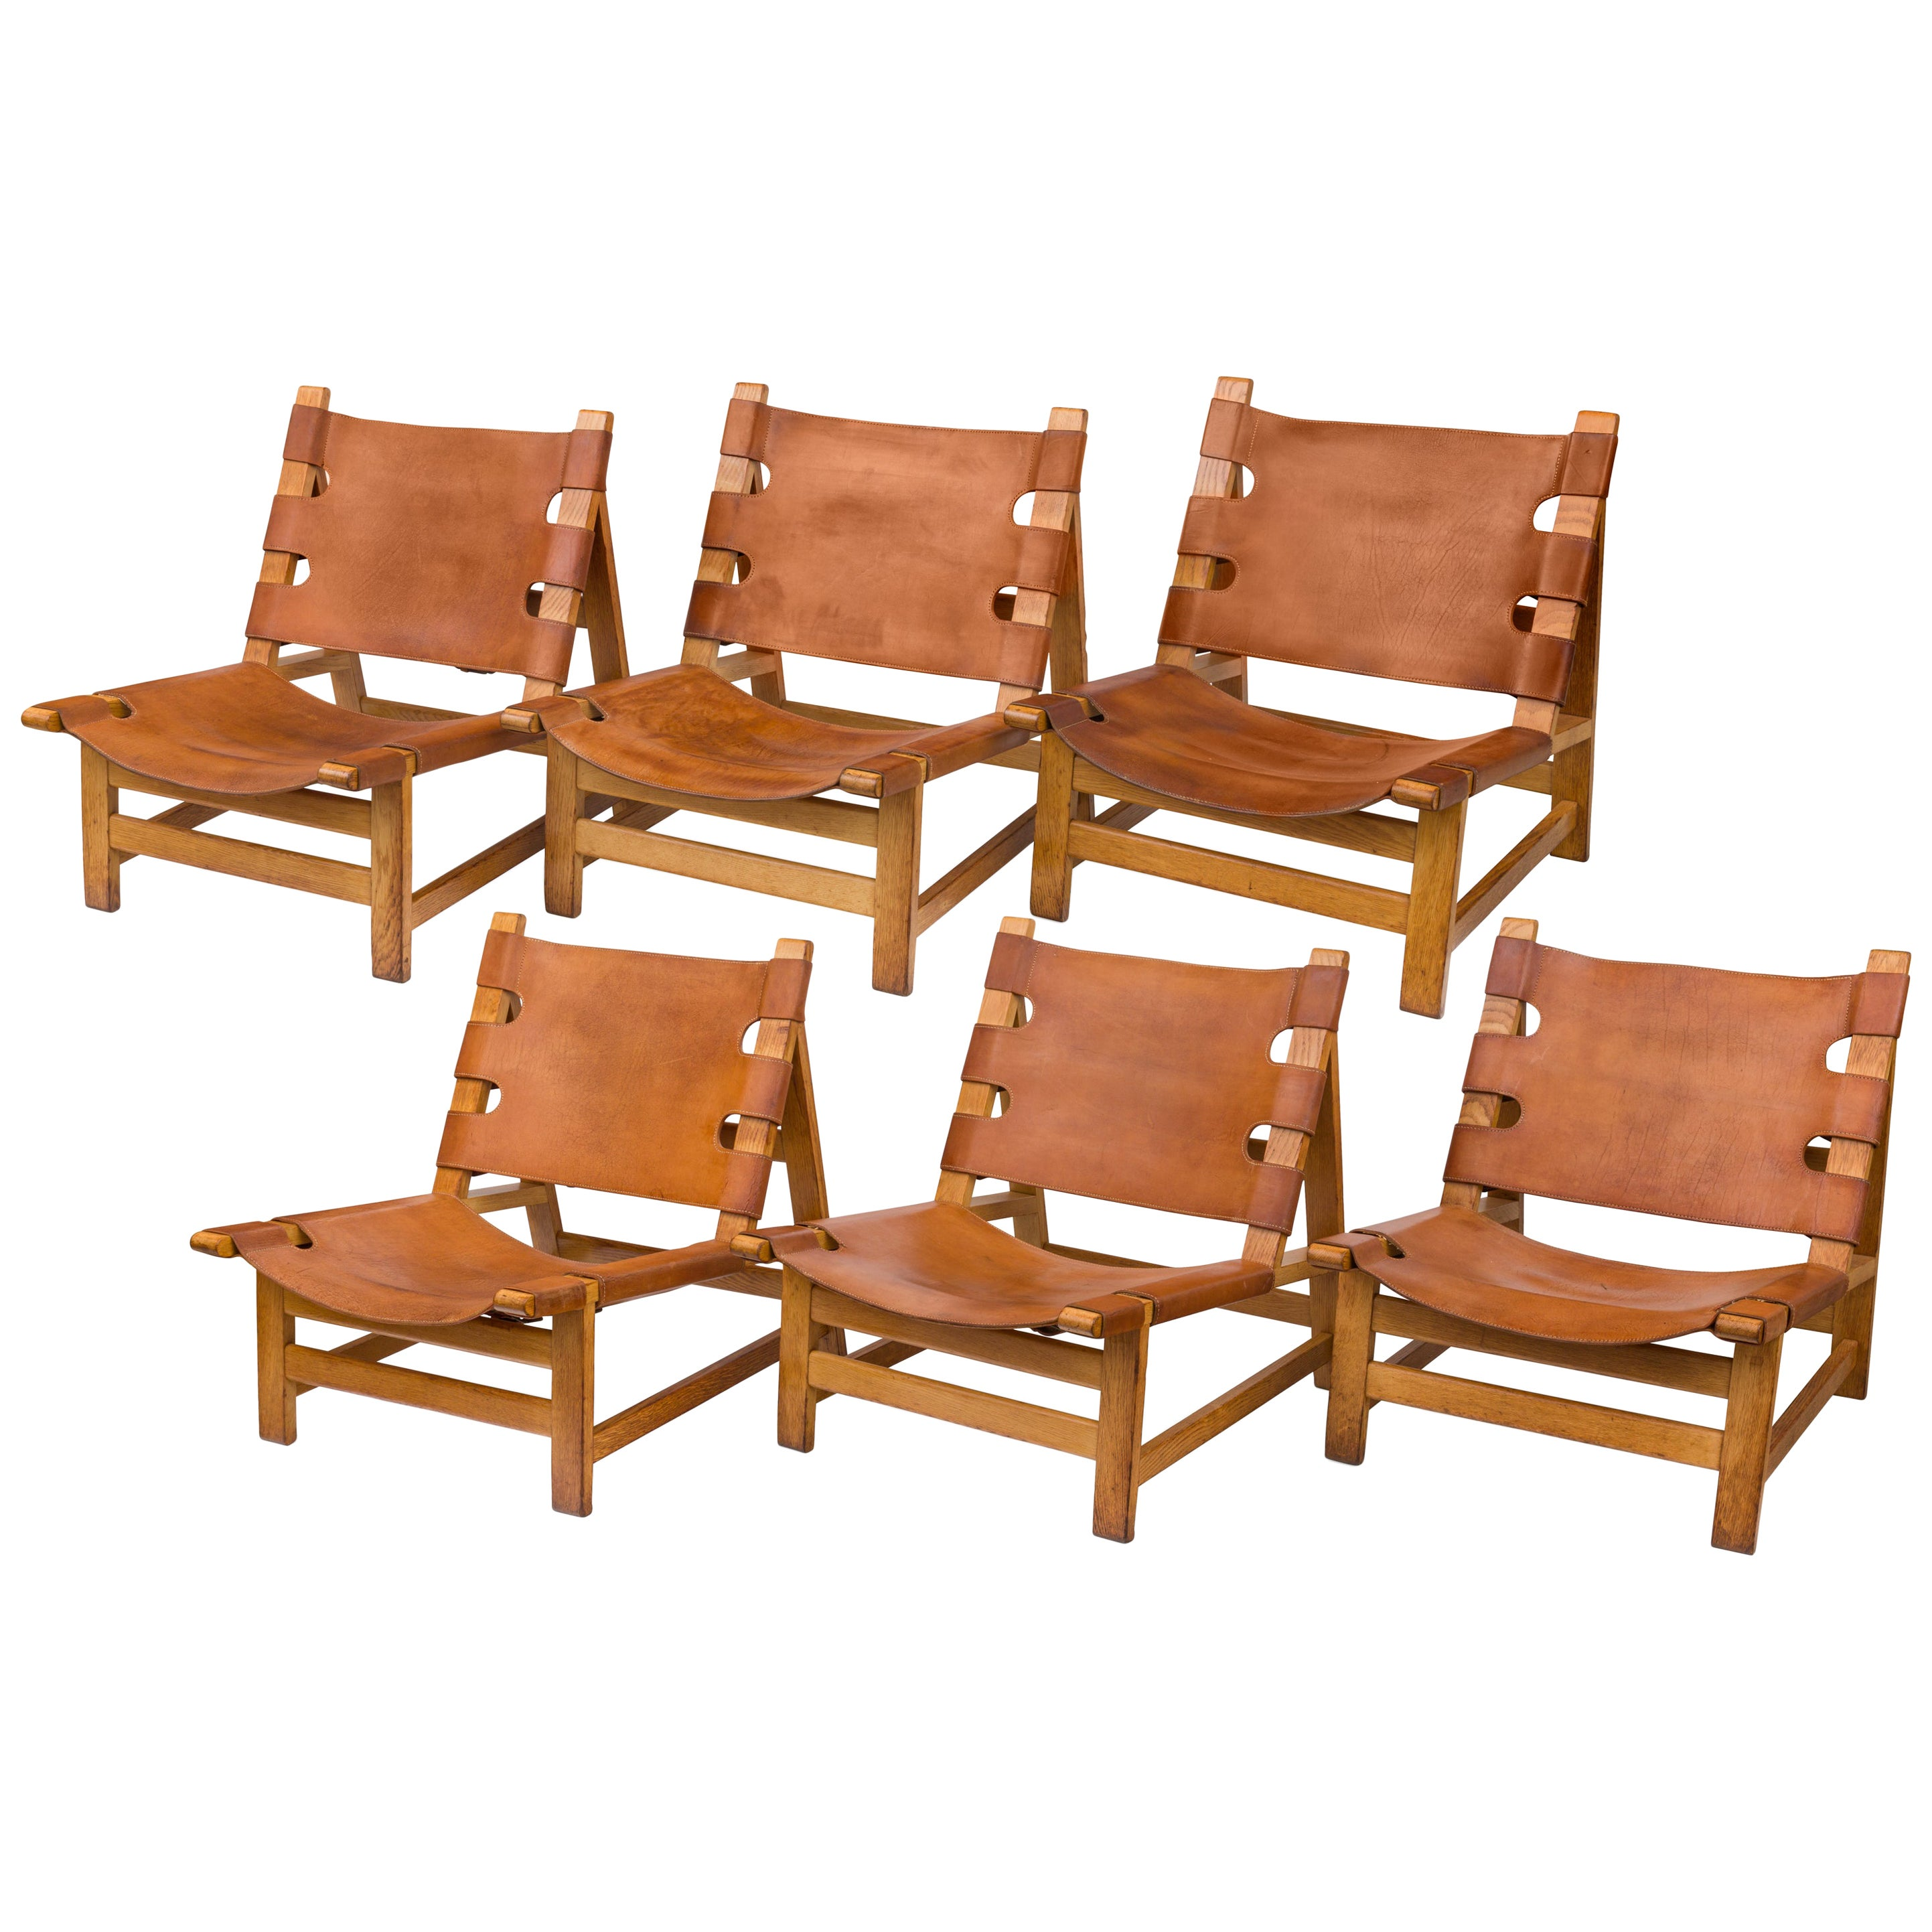 Børge Mogensen Oak and Leather Lounge Chairs, Denmark, 1960s